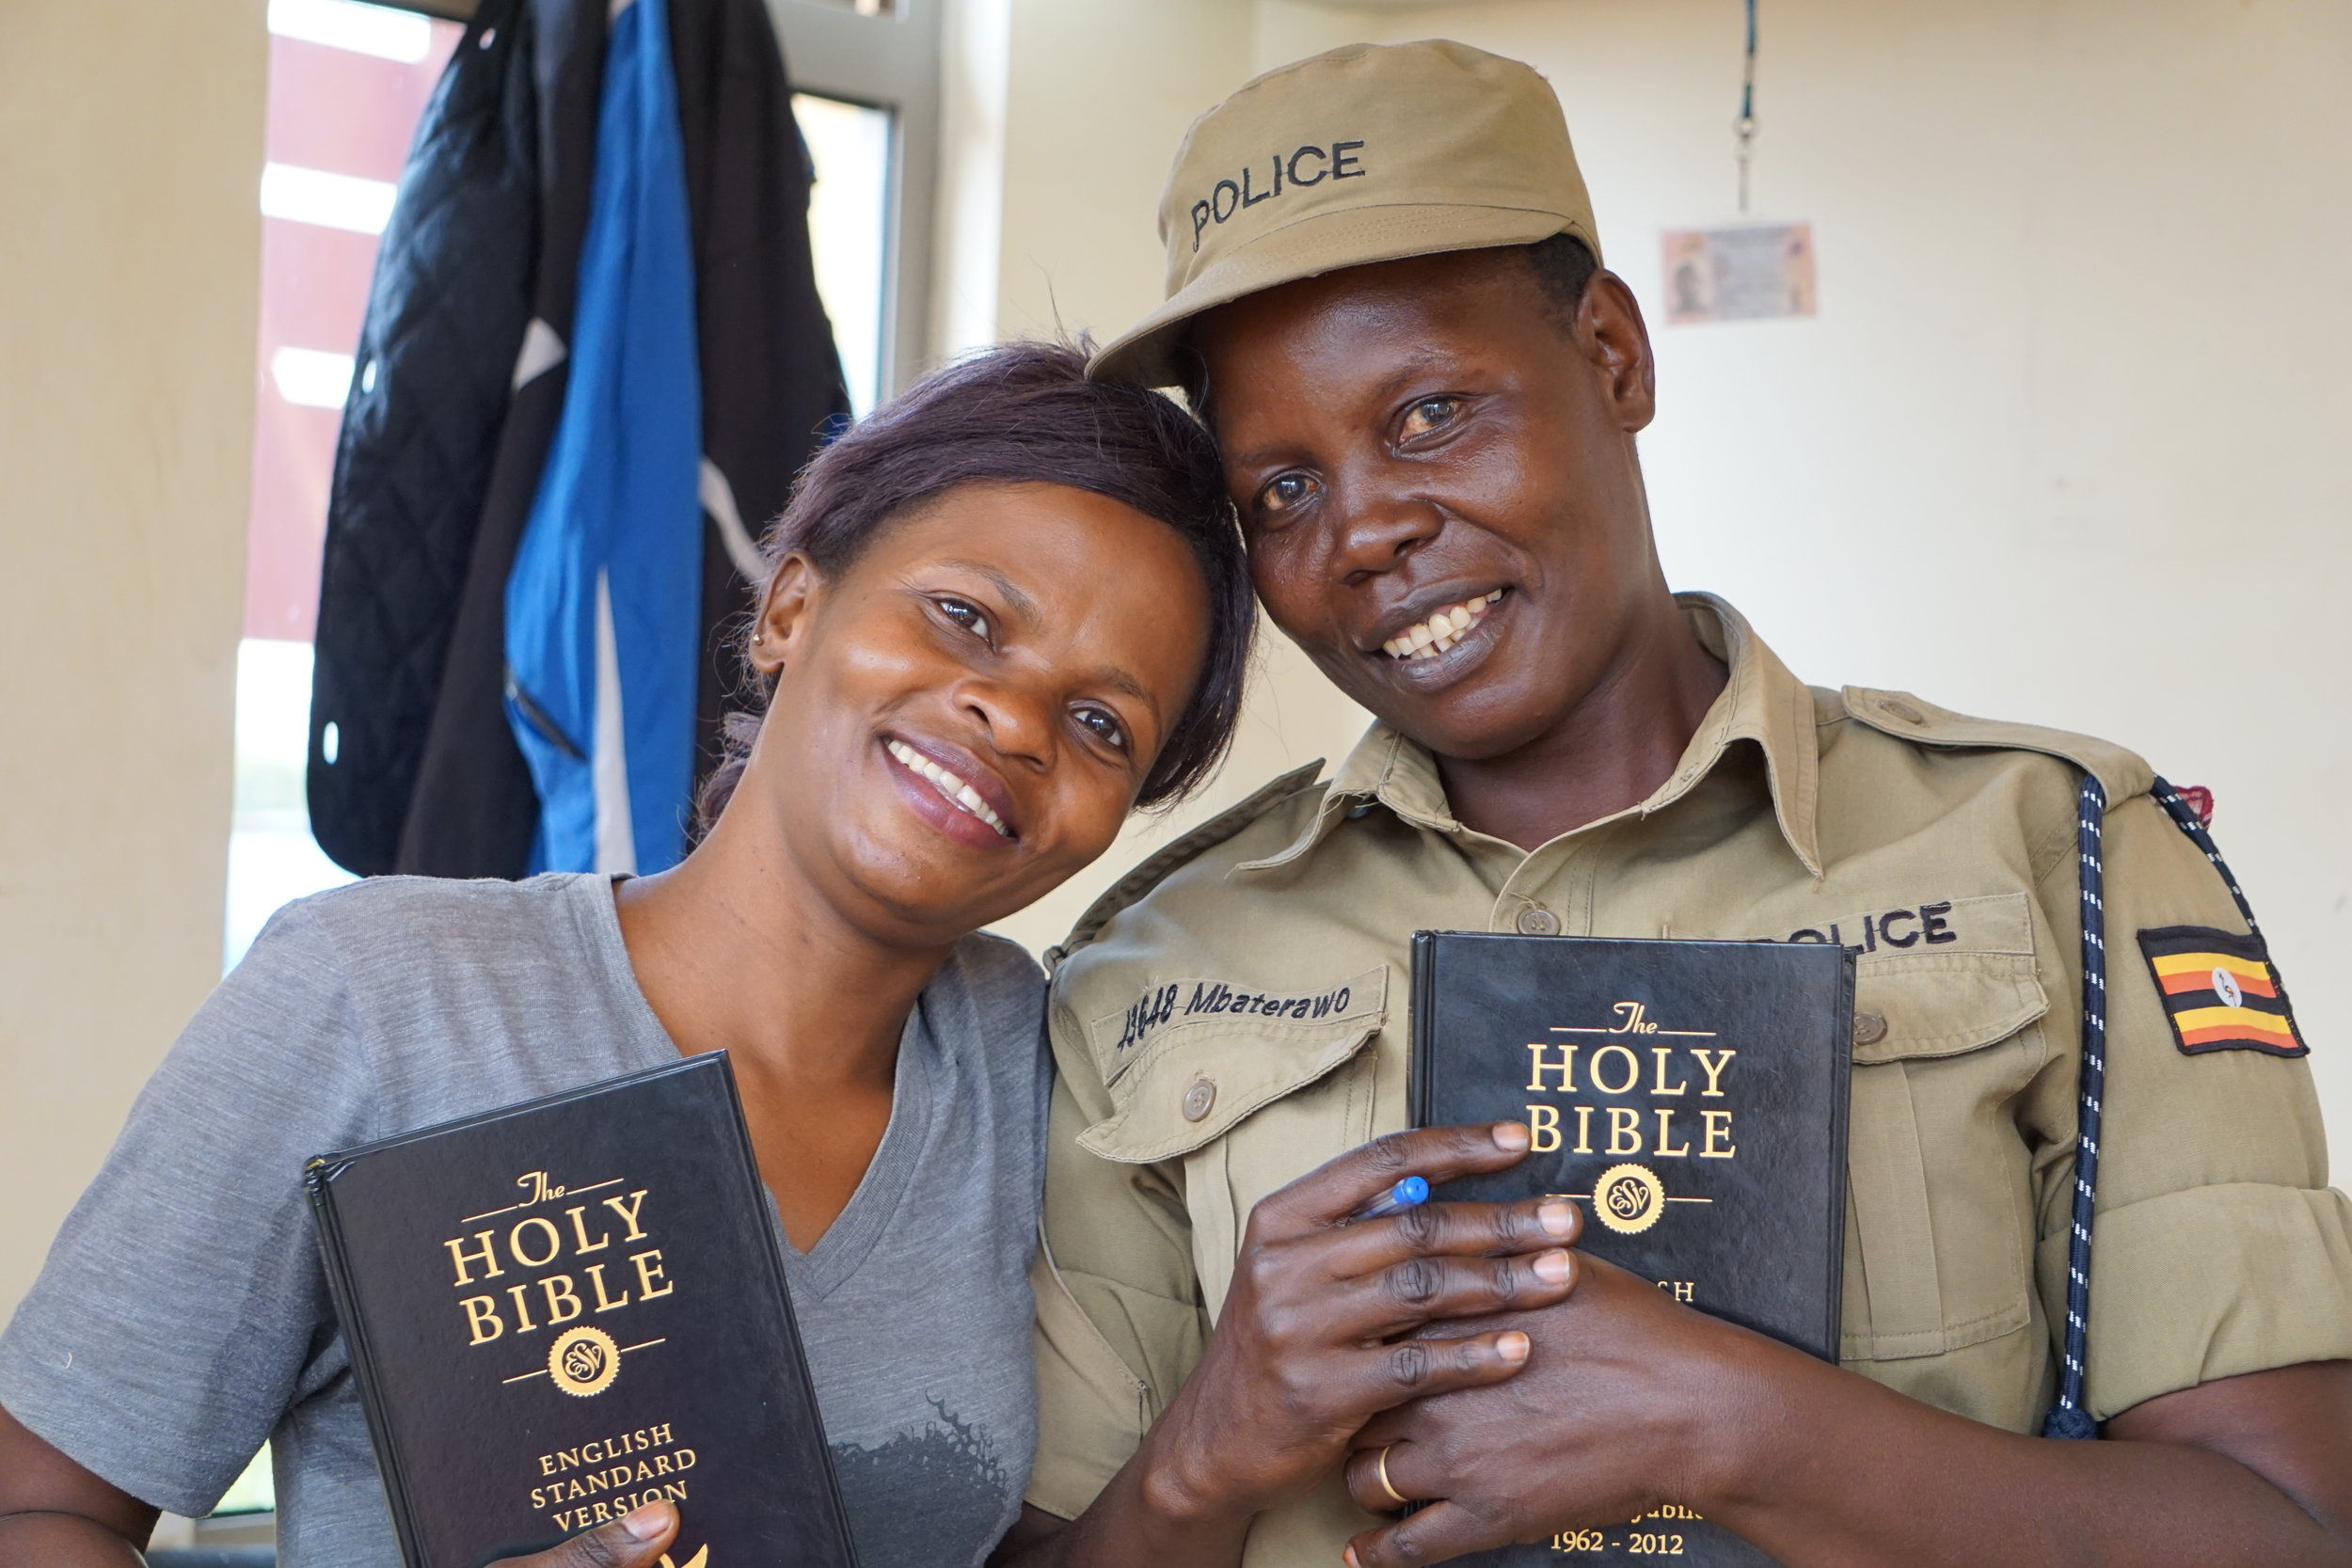 Florence + Joyce - Florence is the leader of our hospital ministry and Joyce is the security guard at the hospital.